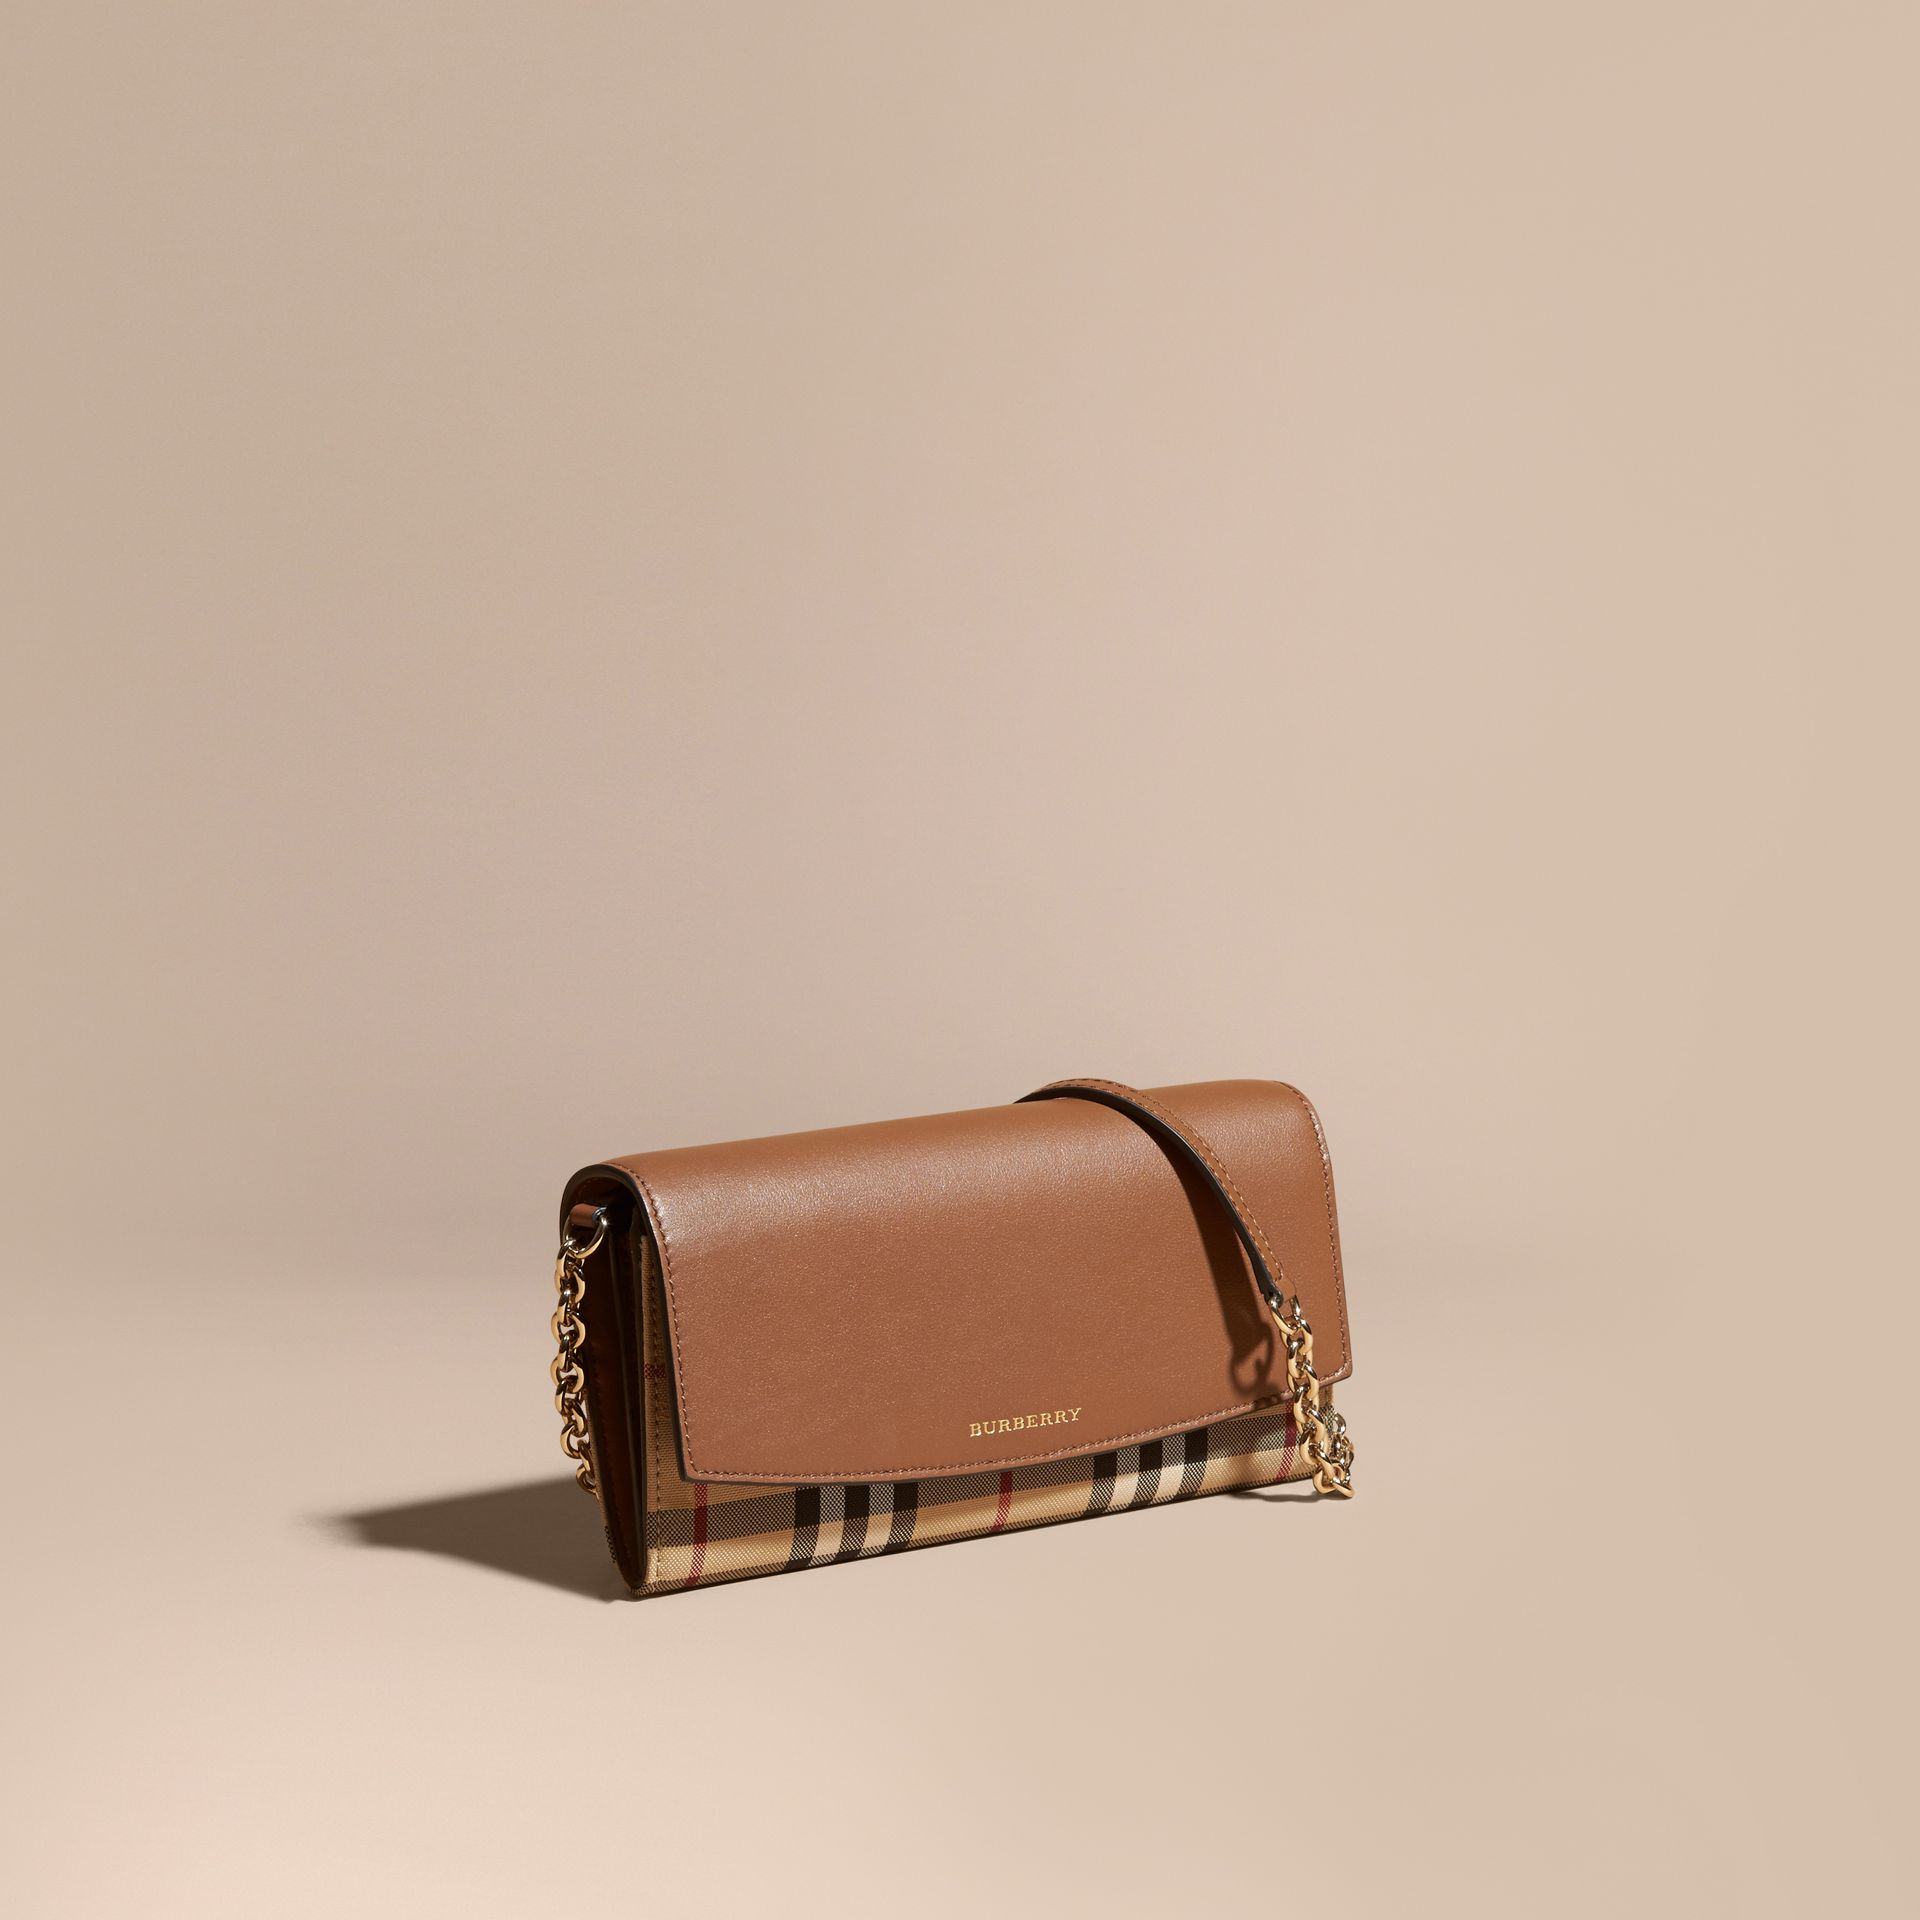 Horseferry Check and Leather Wallet with Chain in Tan - Women | Burberry - gallery image 1